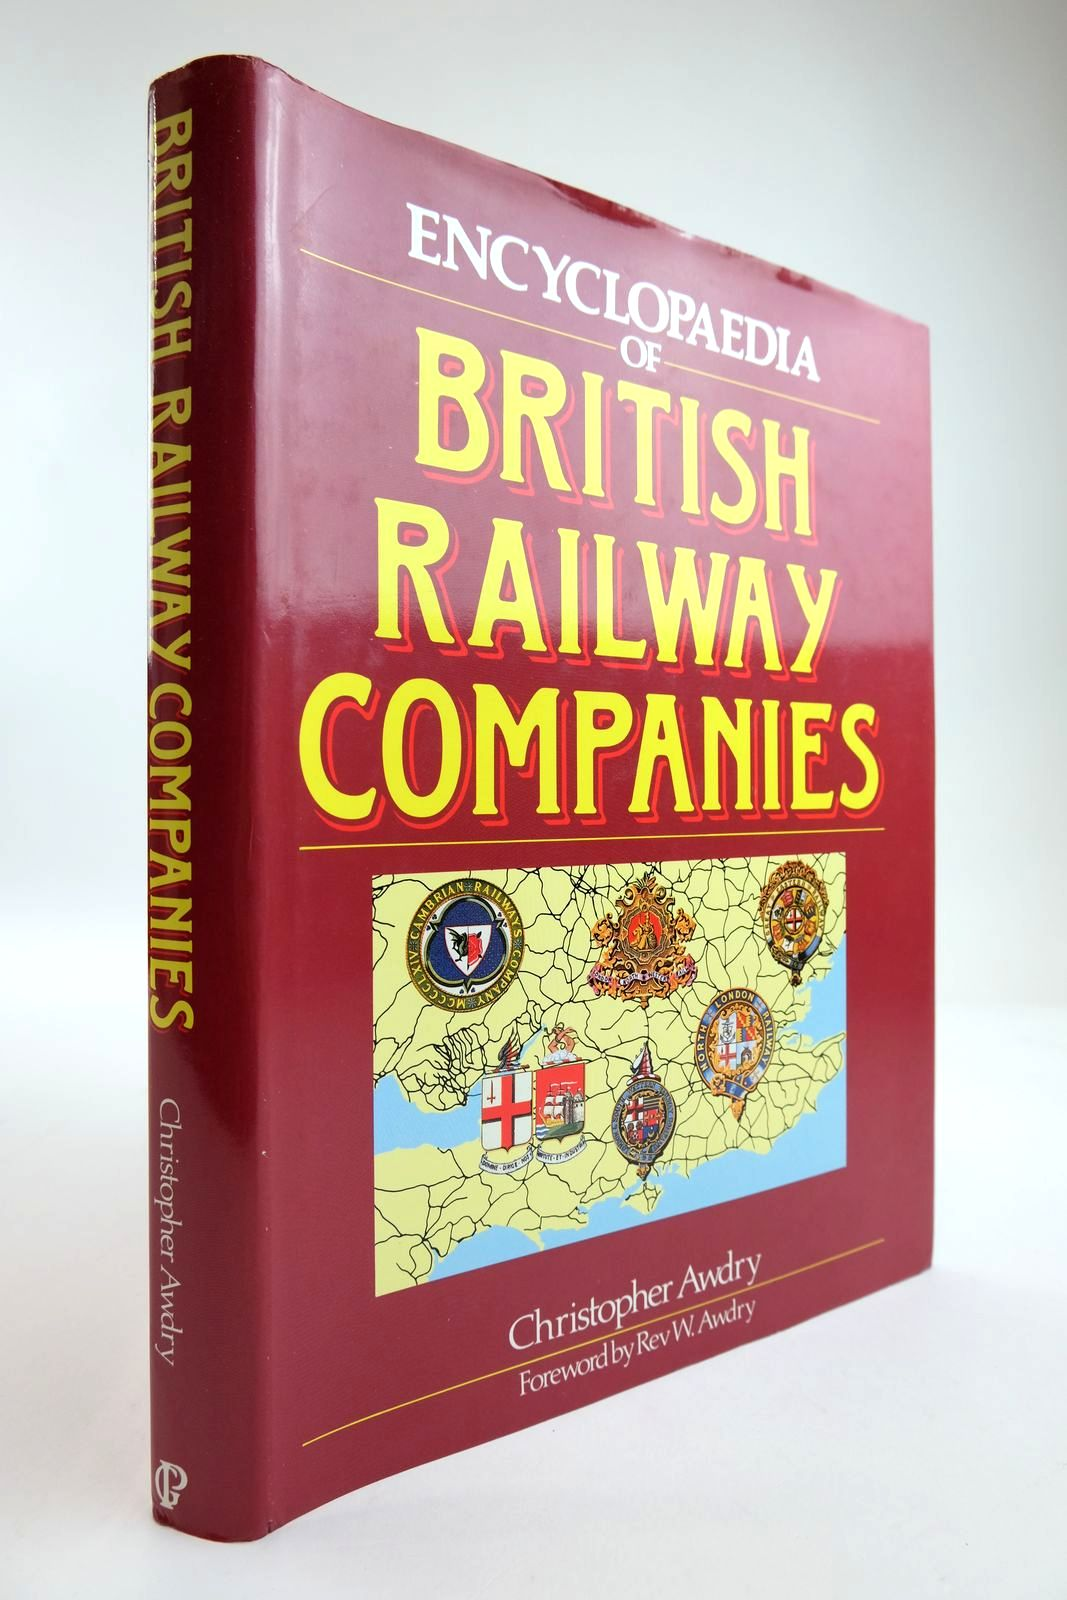 Photo of ENCYCLOPAEDIA OF BRITISH RAILWAY COMPANIES- Stock Number: 2133846